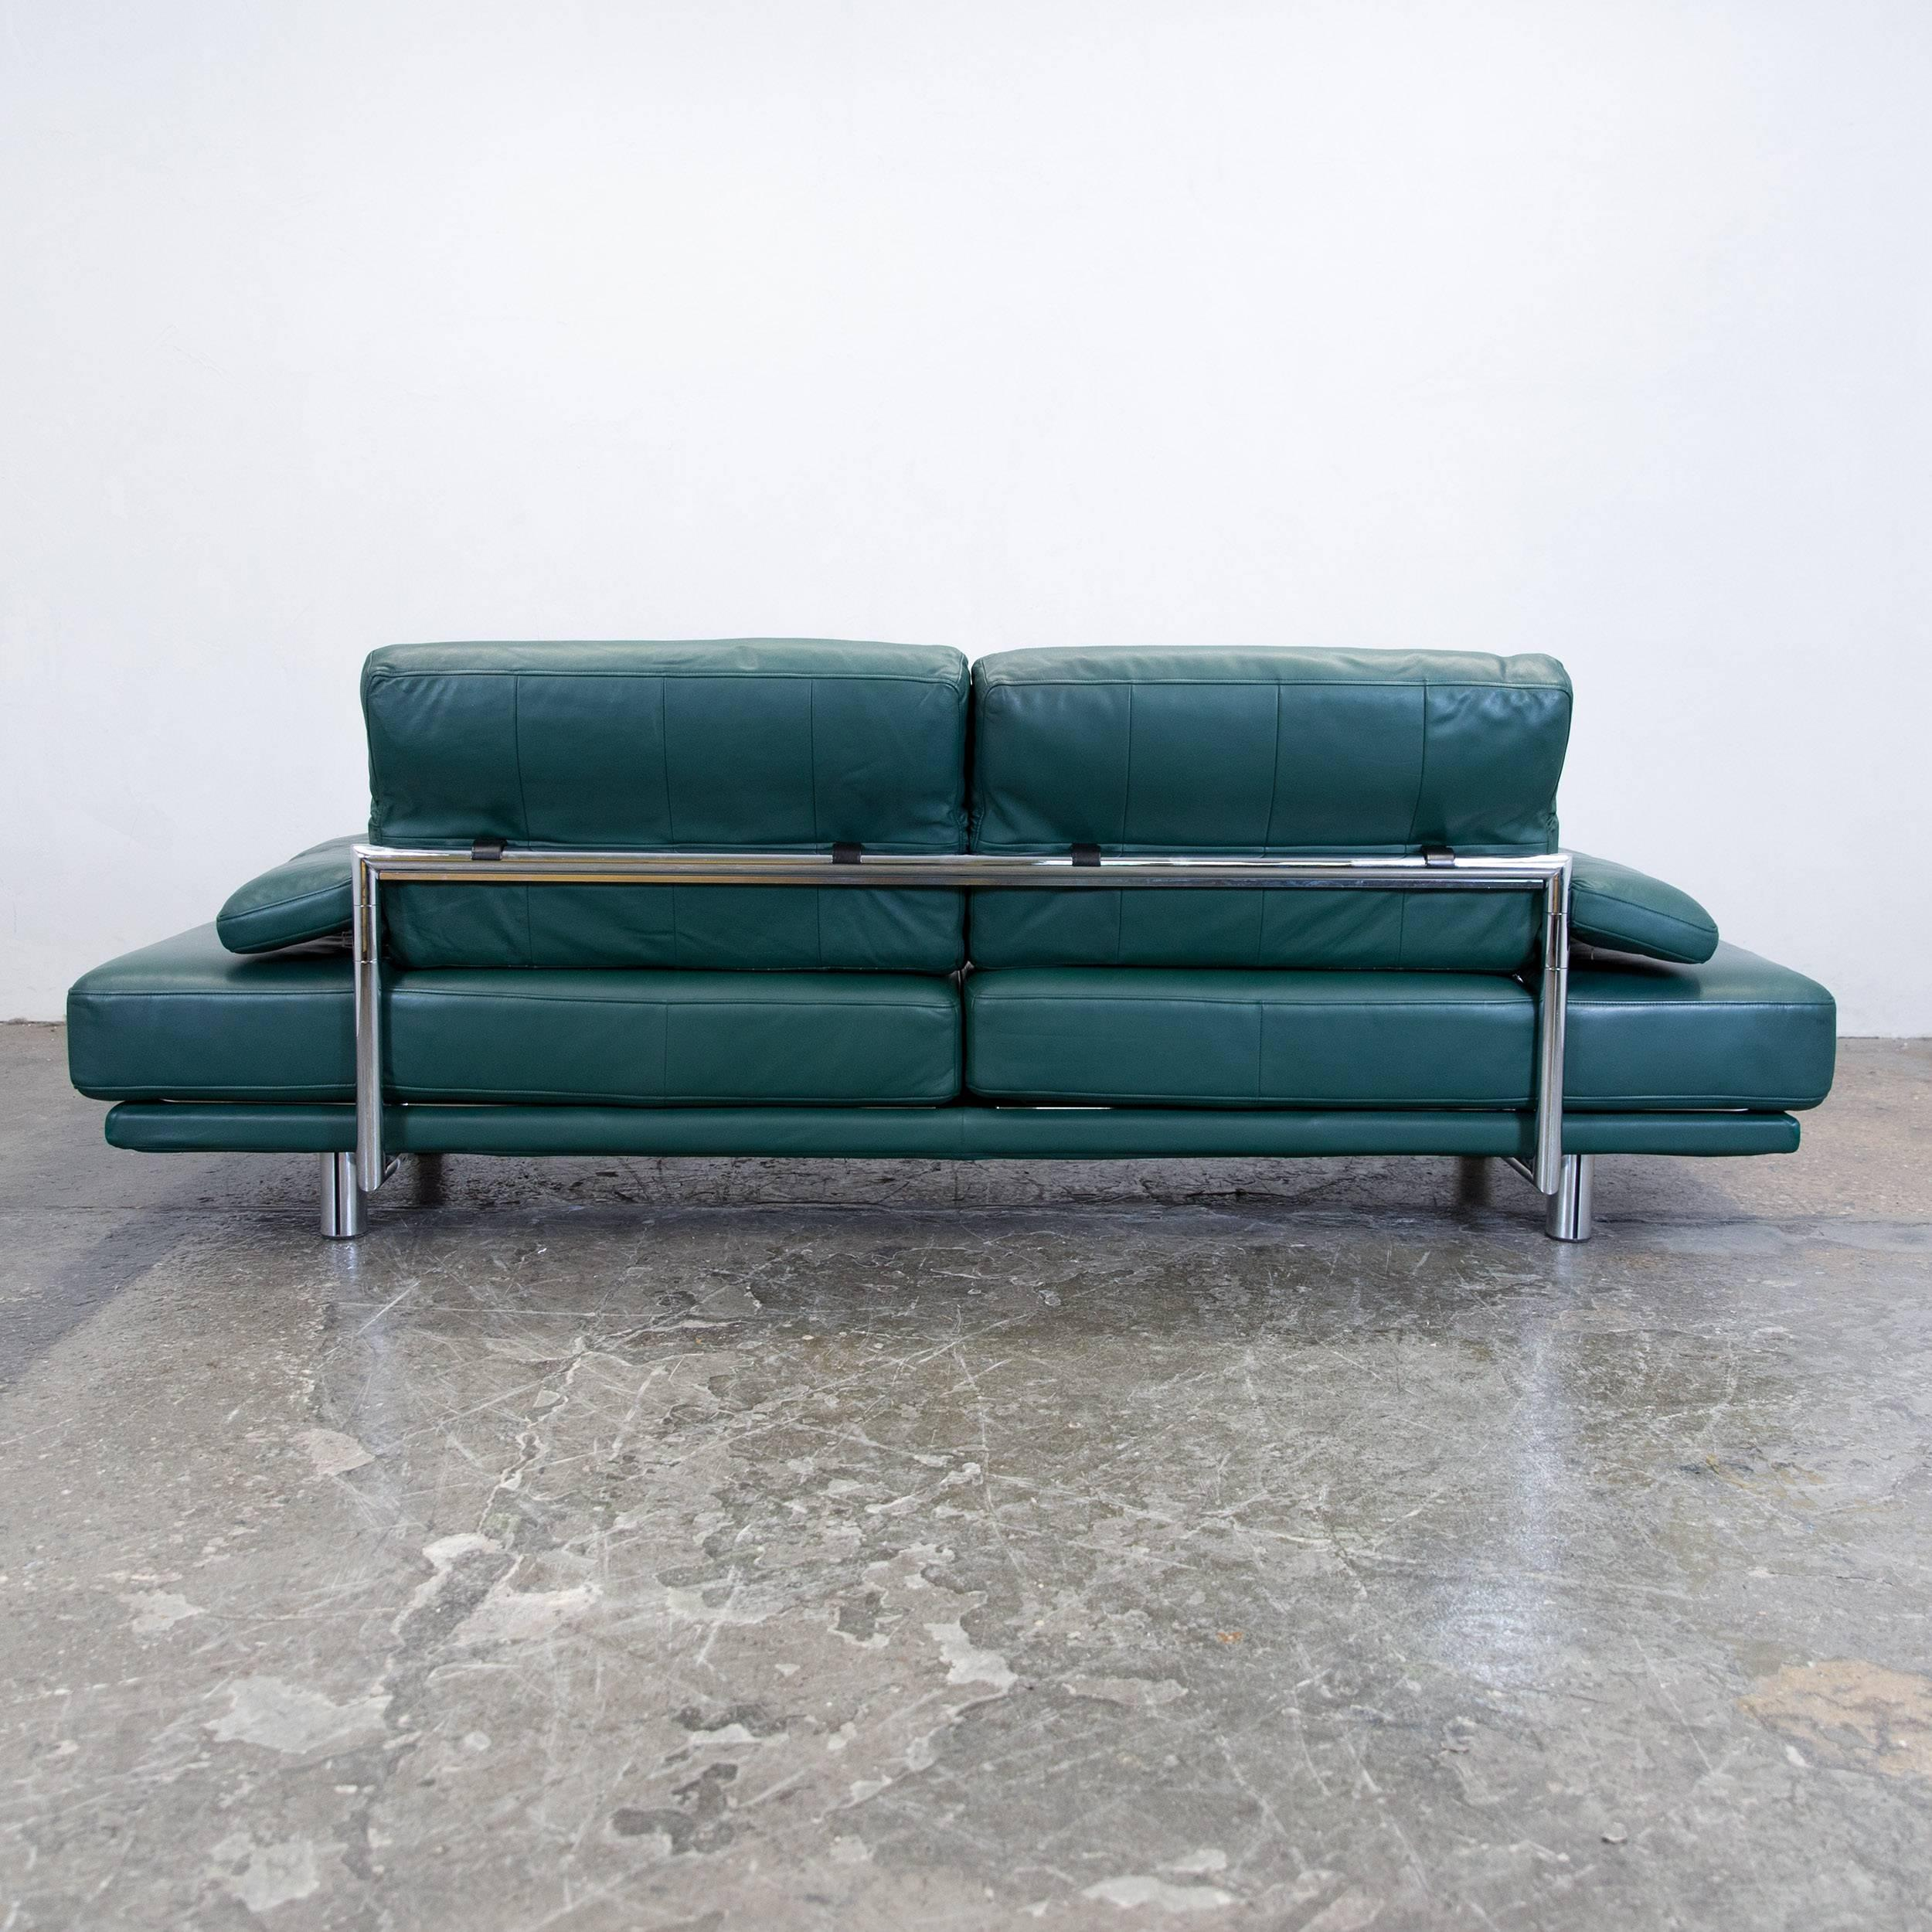 Rolf Benz 2400 Designer Sofa Leather Green Relax Three-Seat Couch ...